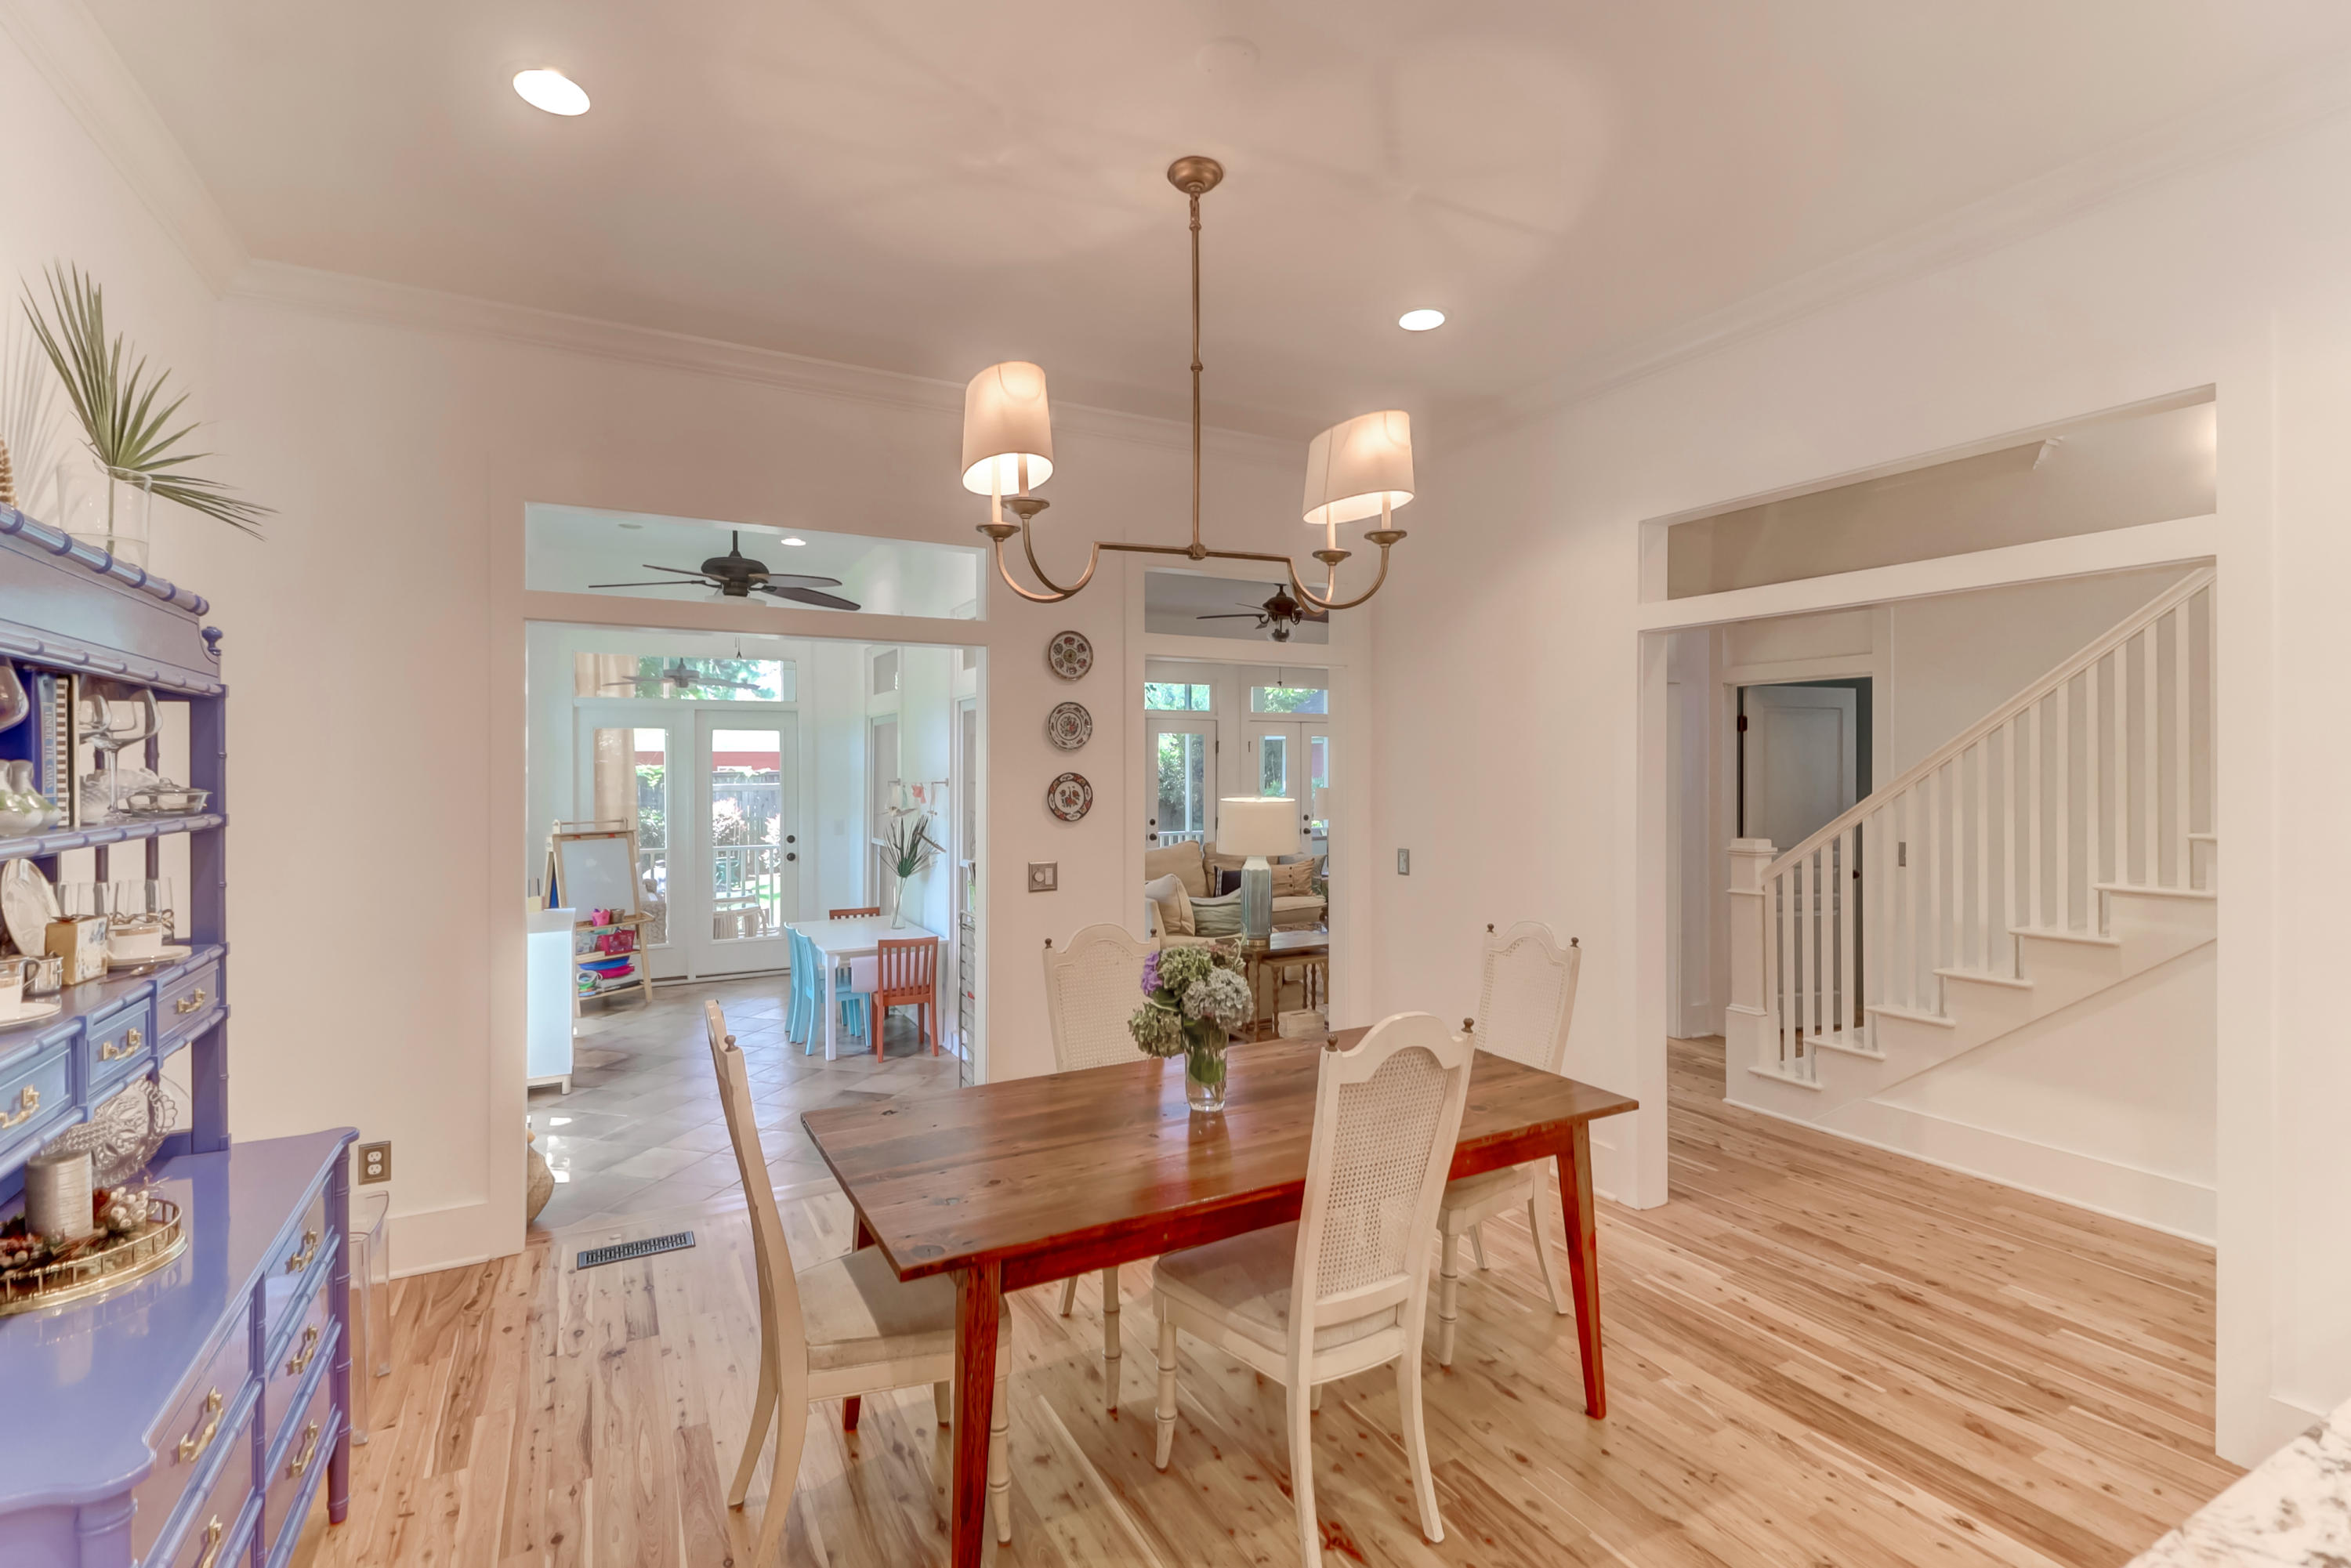 The Villages In St Johns Woods Homes For Sale - 5056 Coral Reef Dr, Johns Island, SC - 18